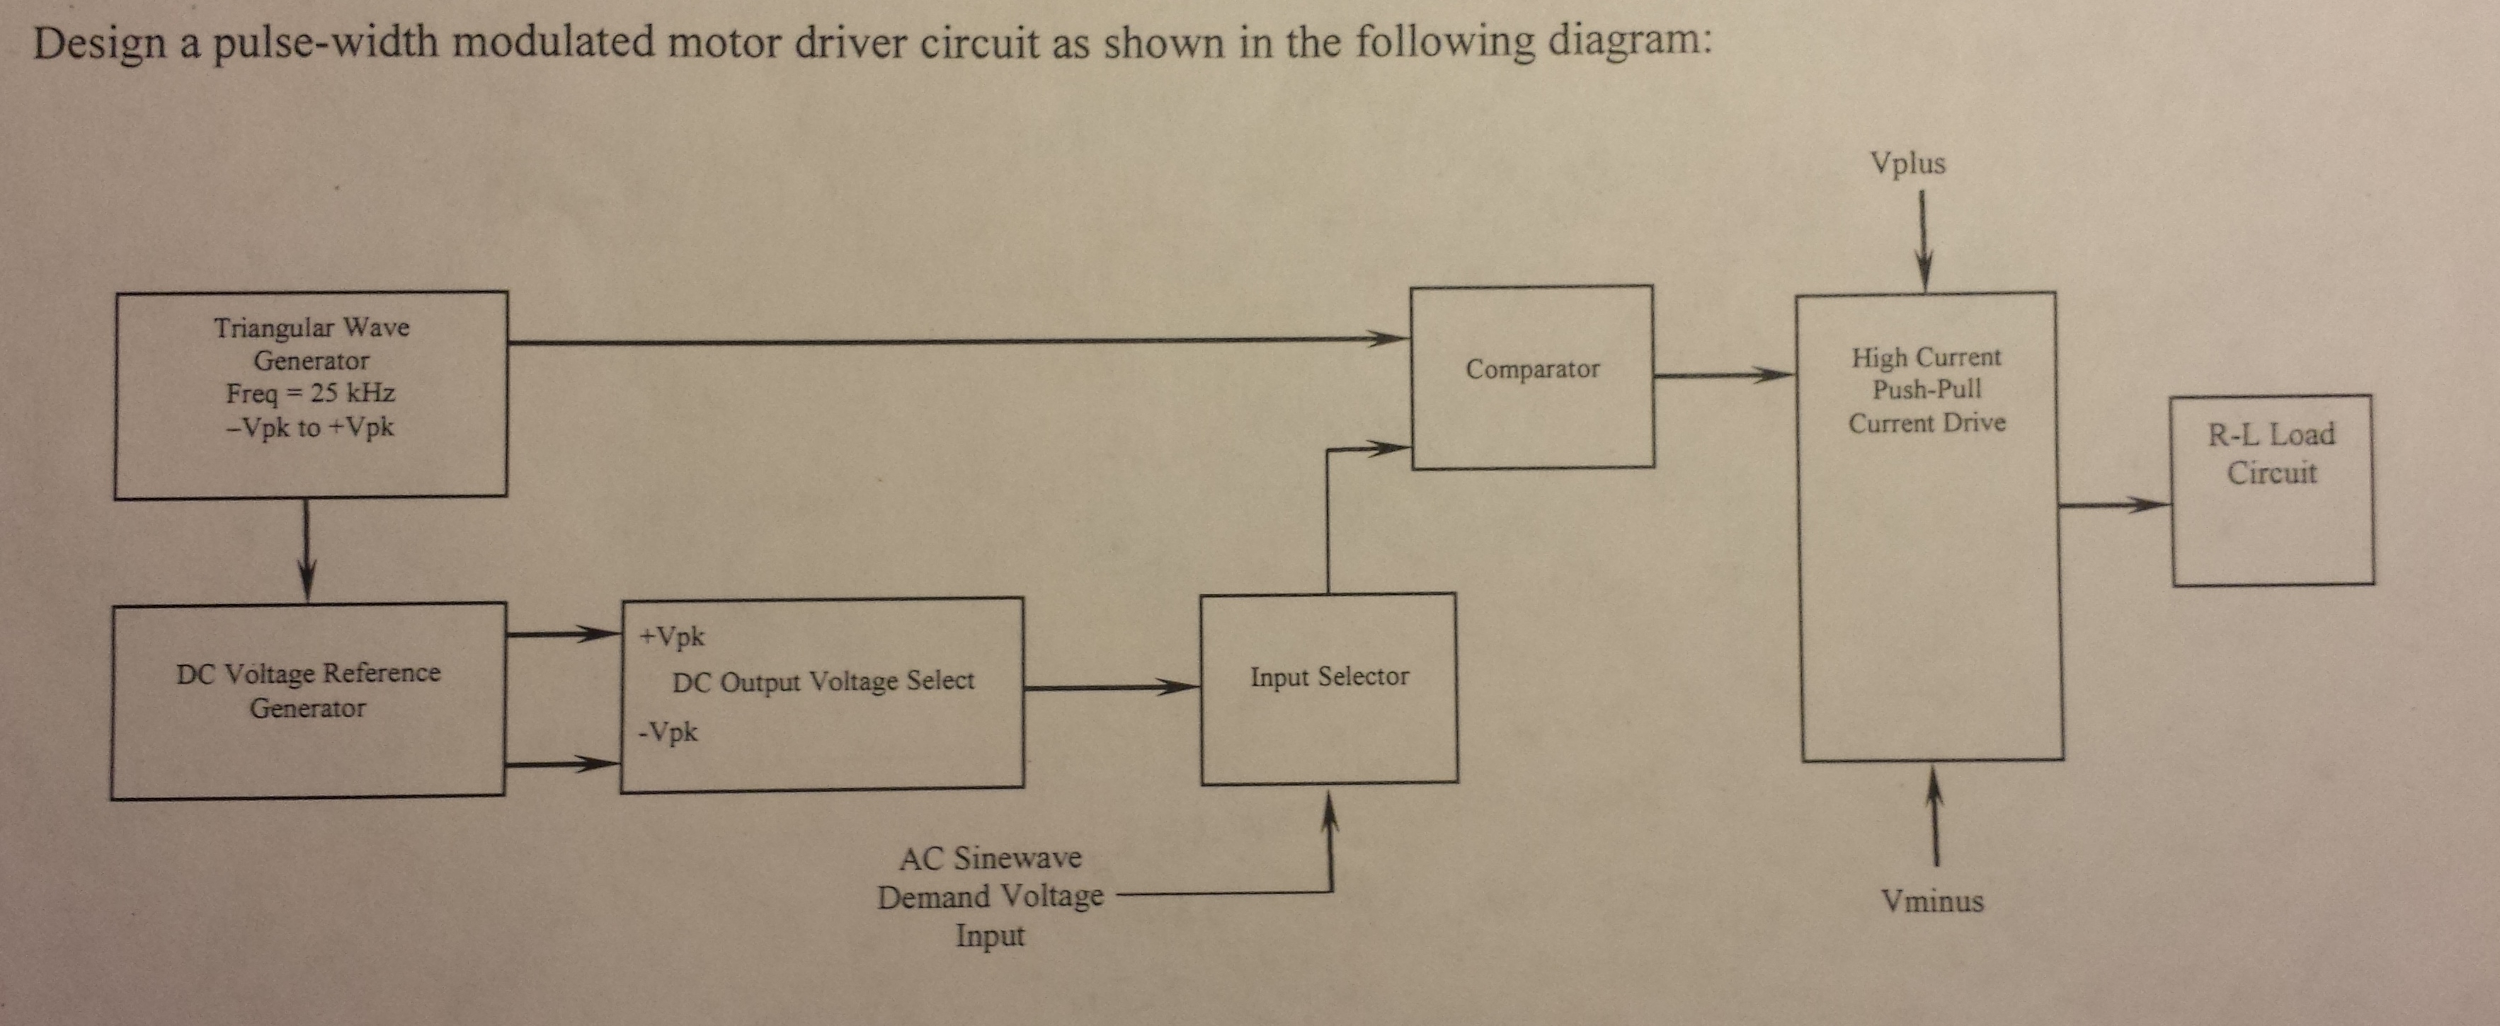 Design A Pulse Width Modulated Motor Driver Circui Sine Wave Generation Schematic Circuit Diagram As Shown In The Following